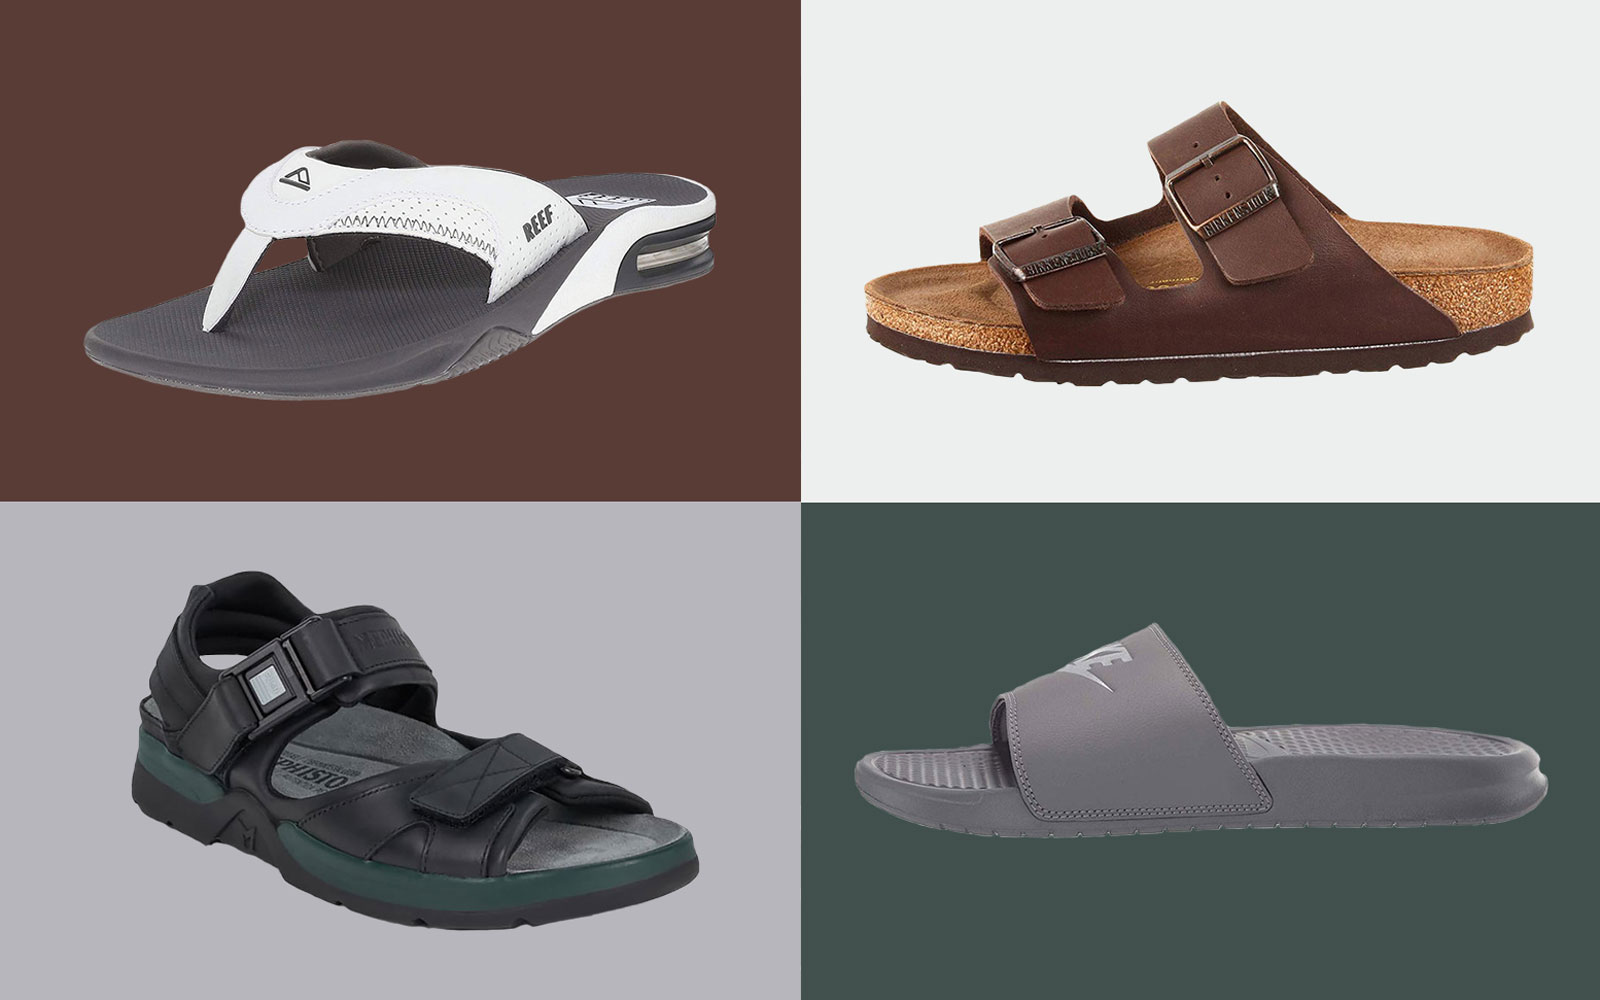 13 Most Comfortable Men's Sandals for 2019